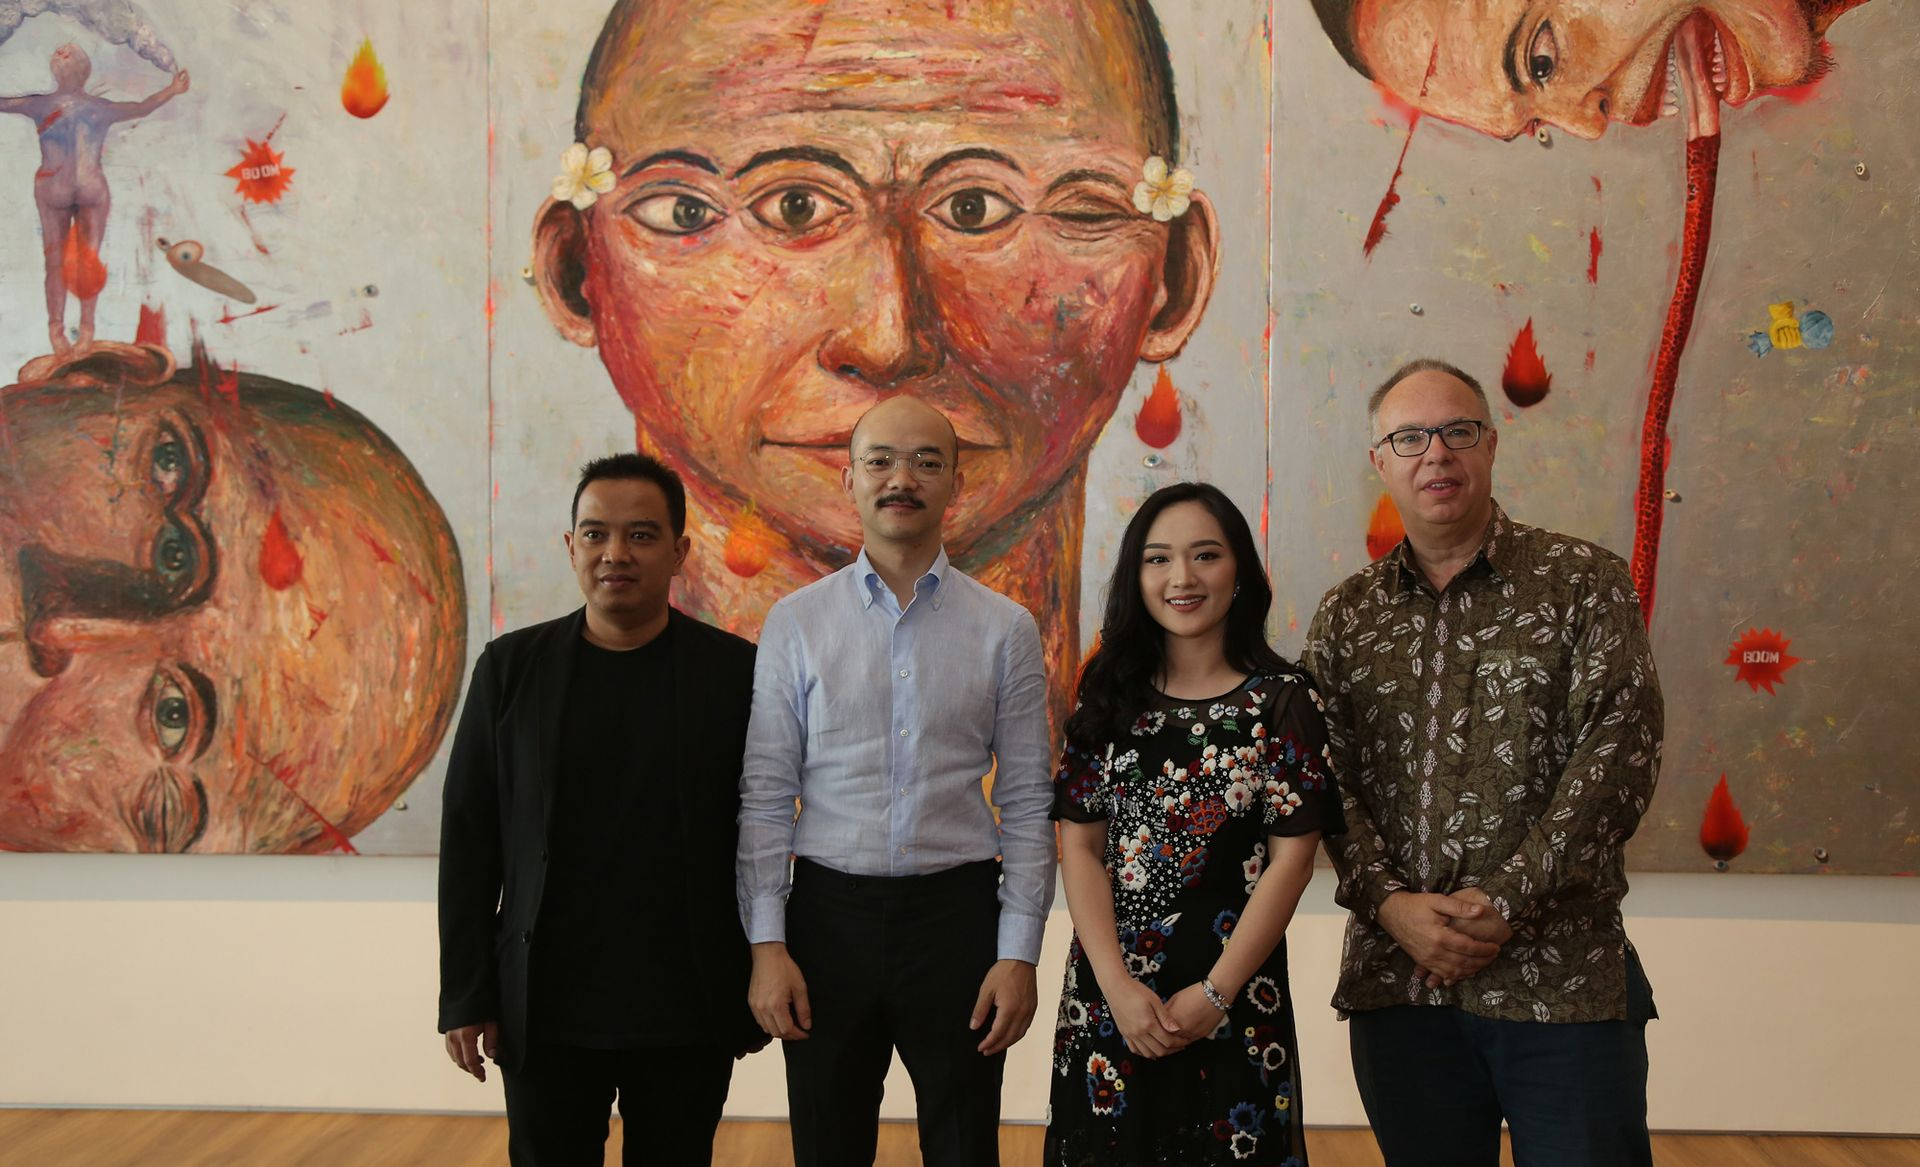 Courtesy of Museum MACAN